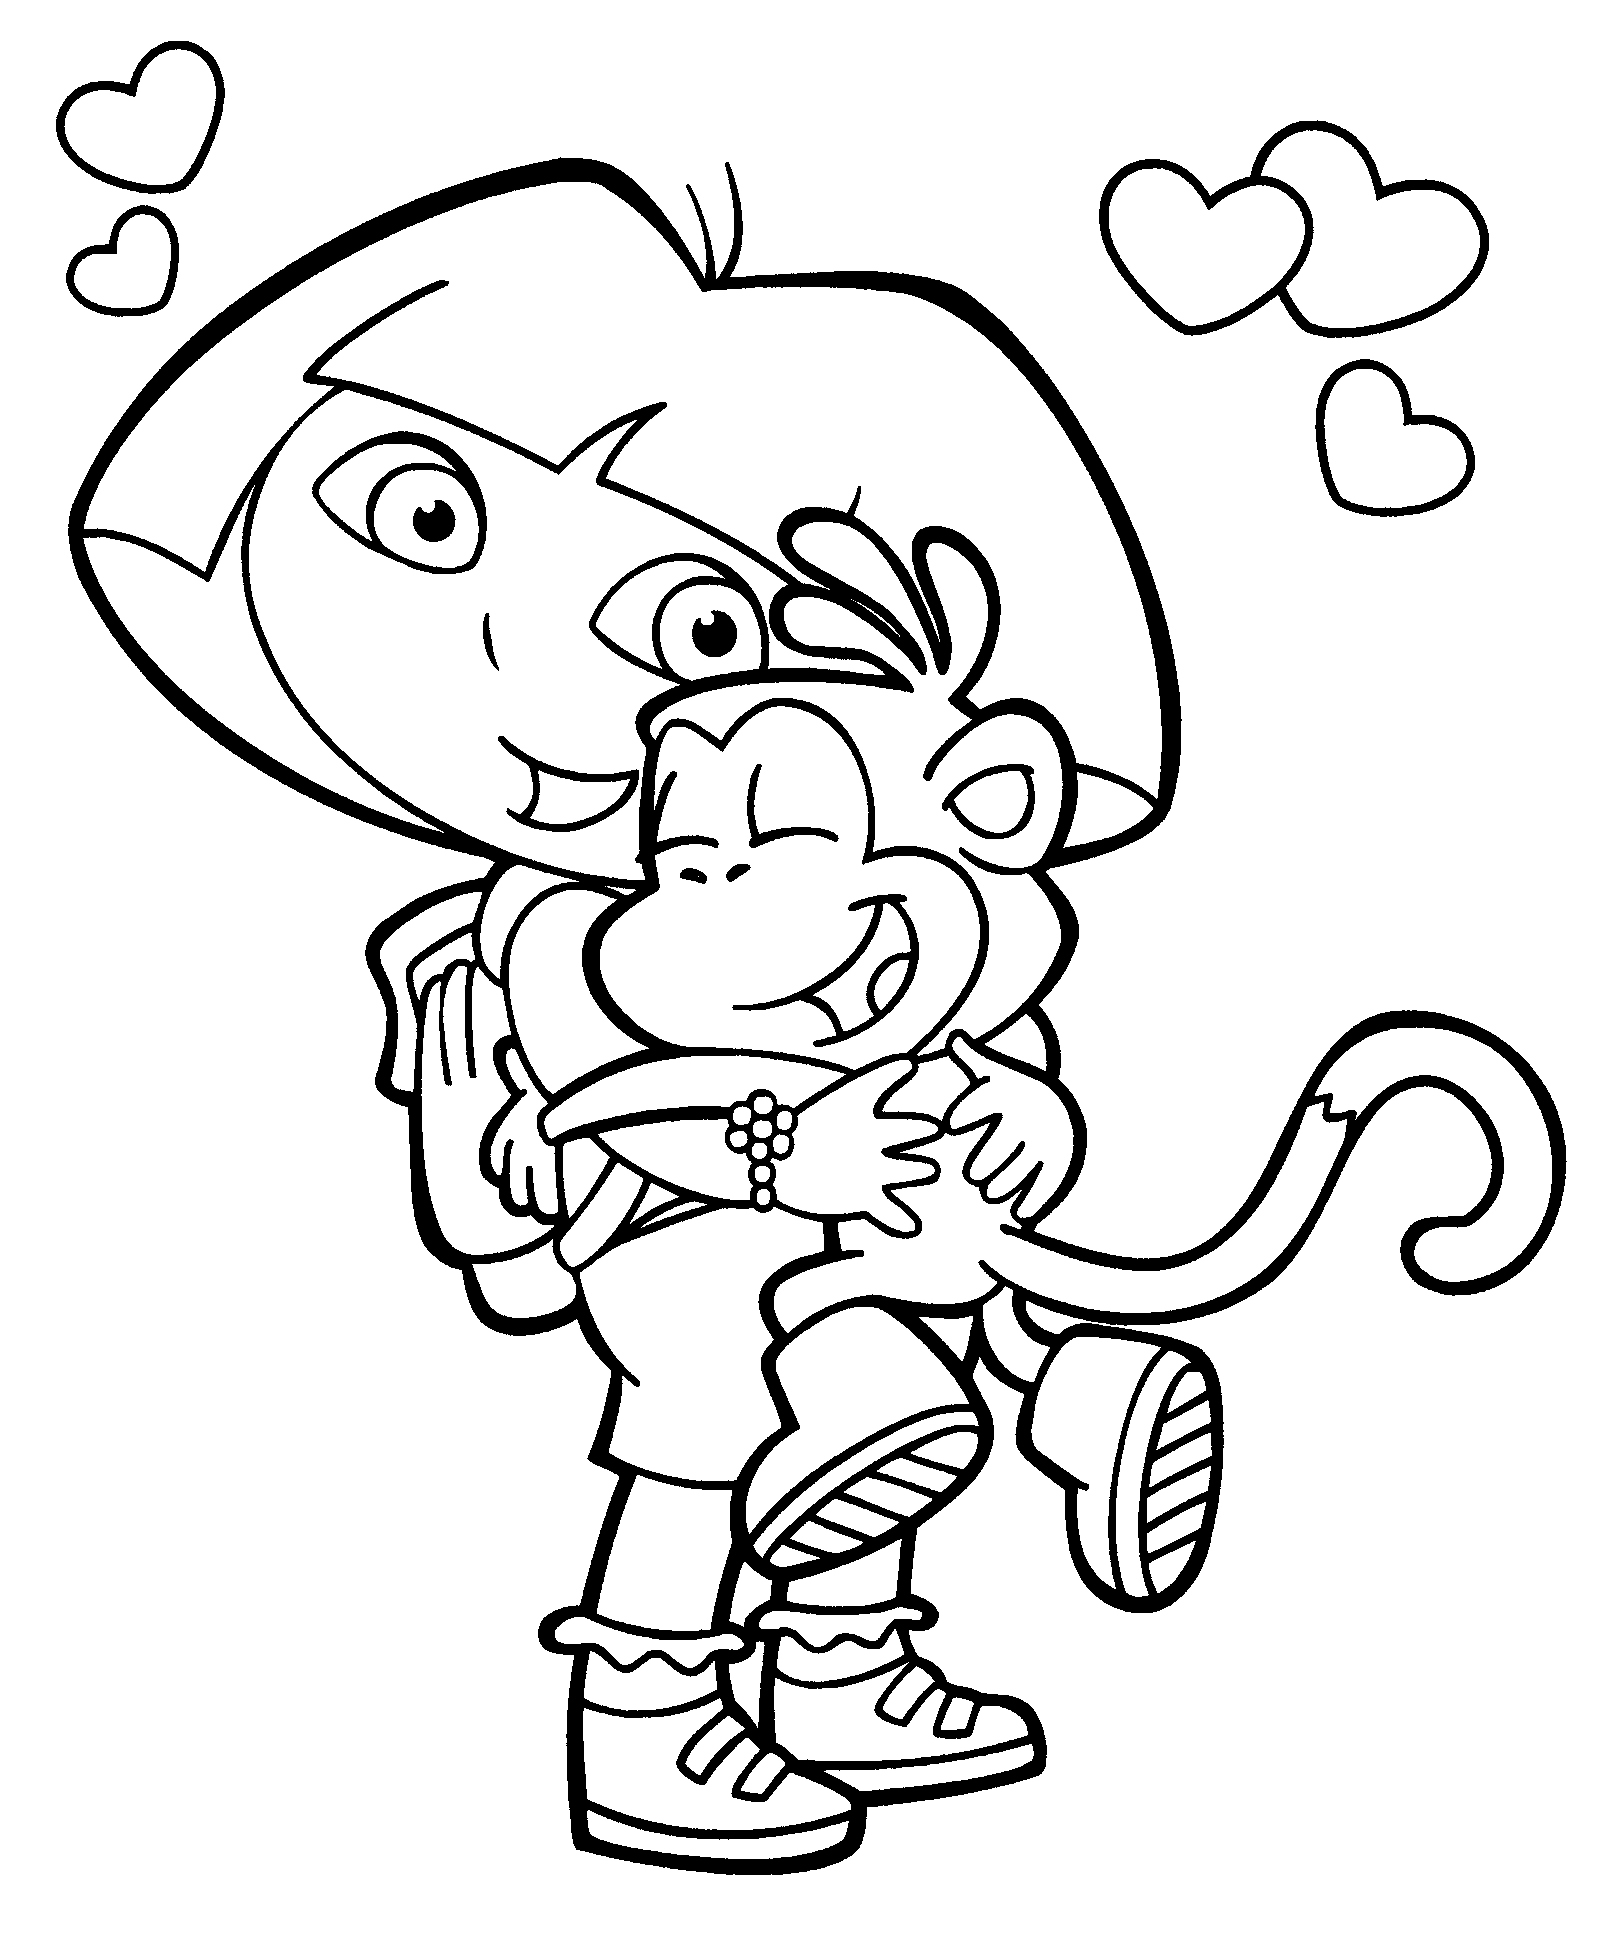 dora printable coloring pages - dora boots coloring page coloring kids pinterest